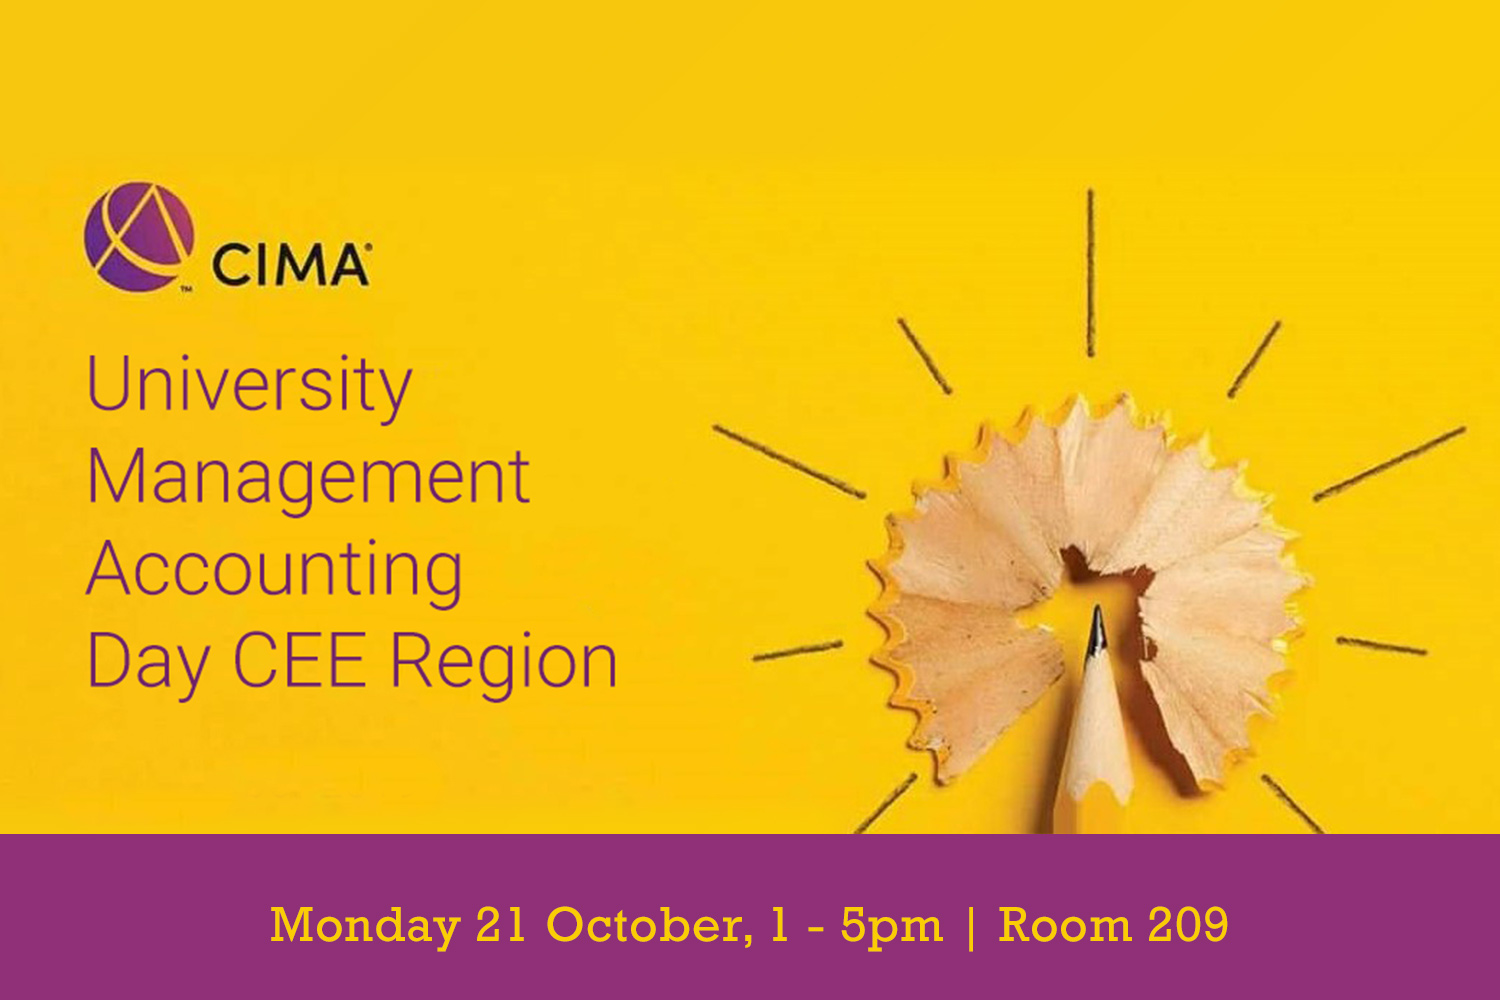 CIMA University Management Accounting Day